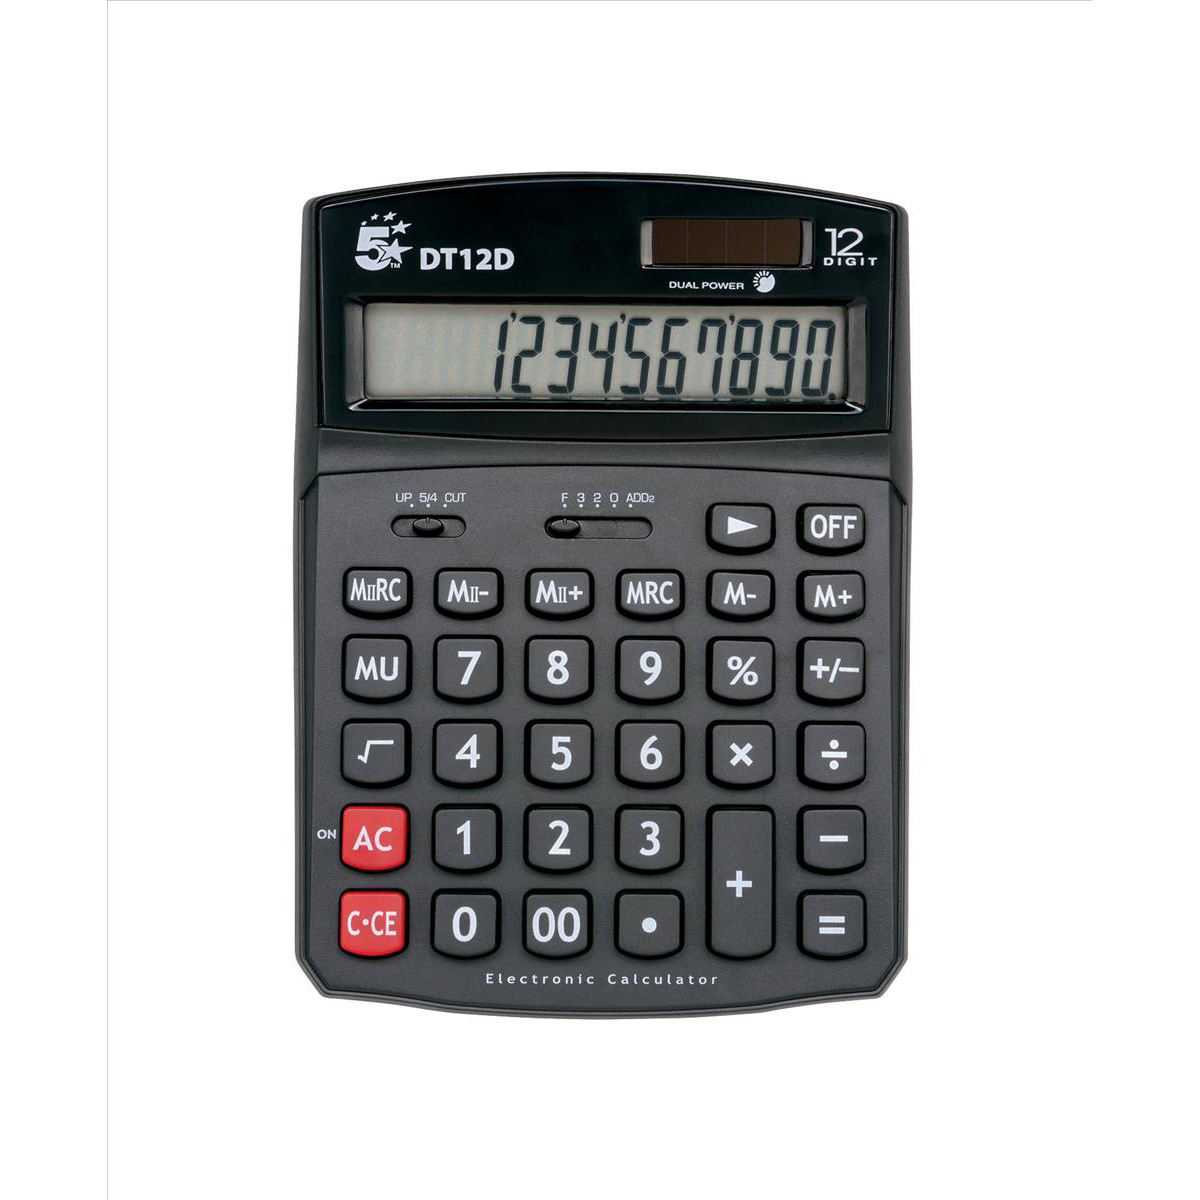 Desktop Calculator 5 Star Office Desktop Calculator 12 Digit 2x3 Key Memory Battery/Solar Power 91x11x125mm Black